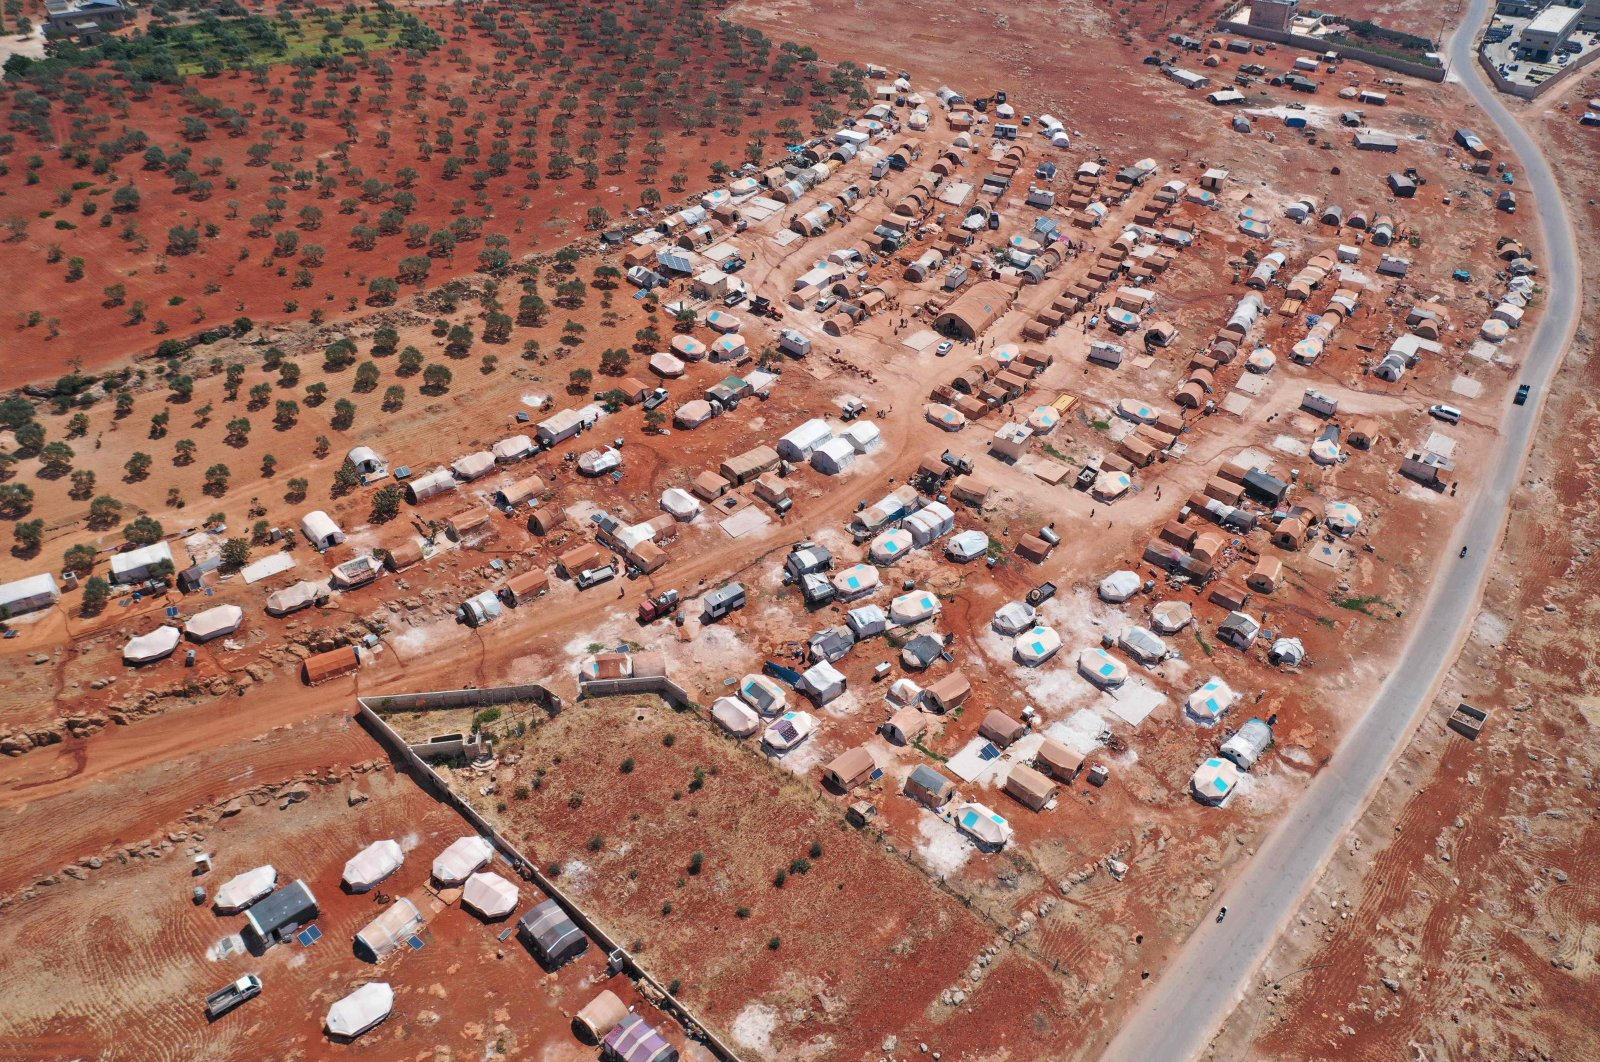 An aerial view of a camp for displaced Syrians near the town of Maaret Misrin in Syria's northwestern Idlib province, July 11, 2020. (AFP Photo)